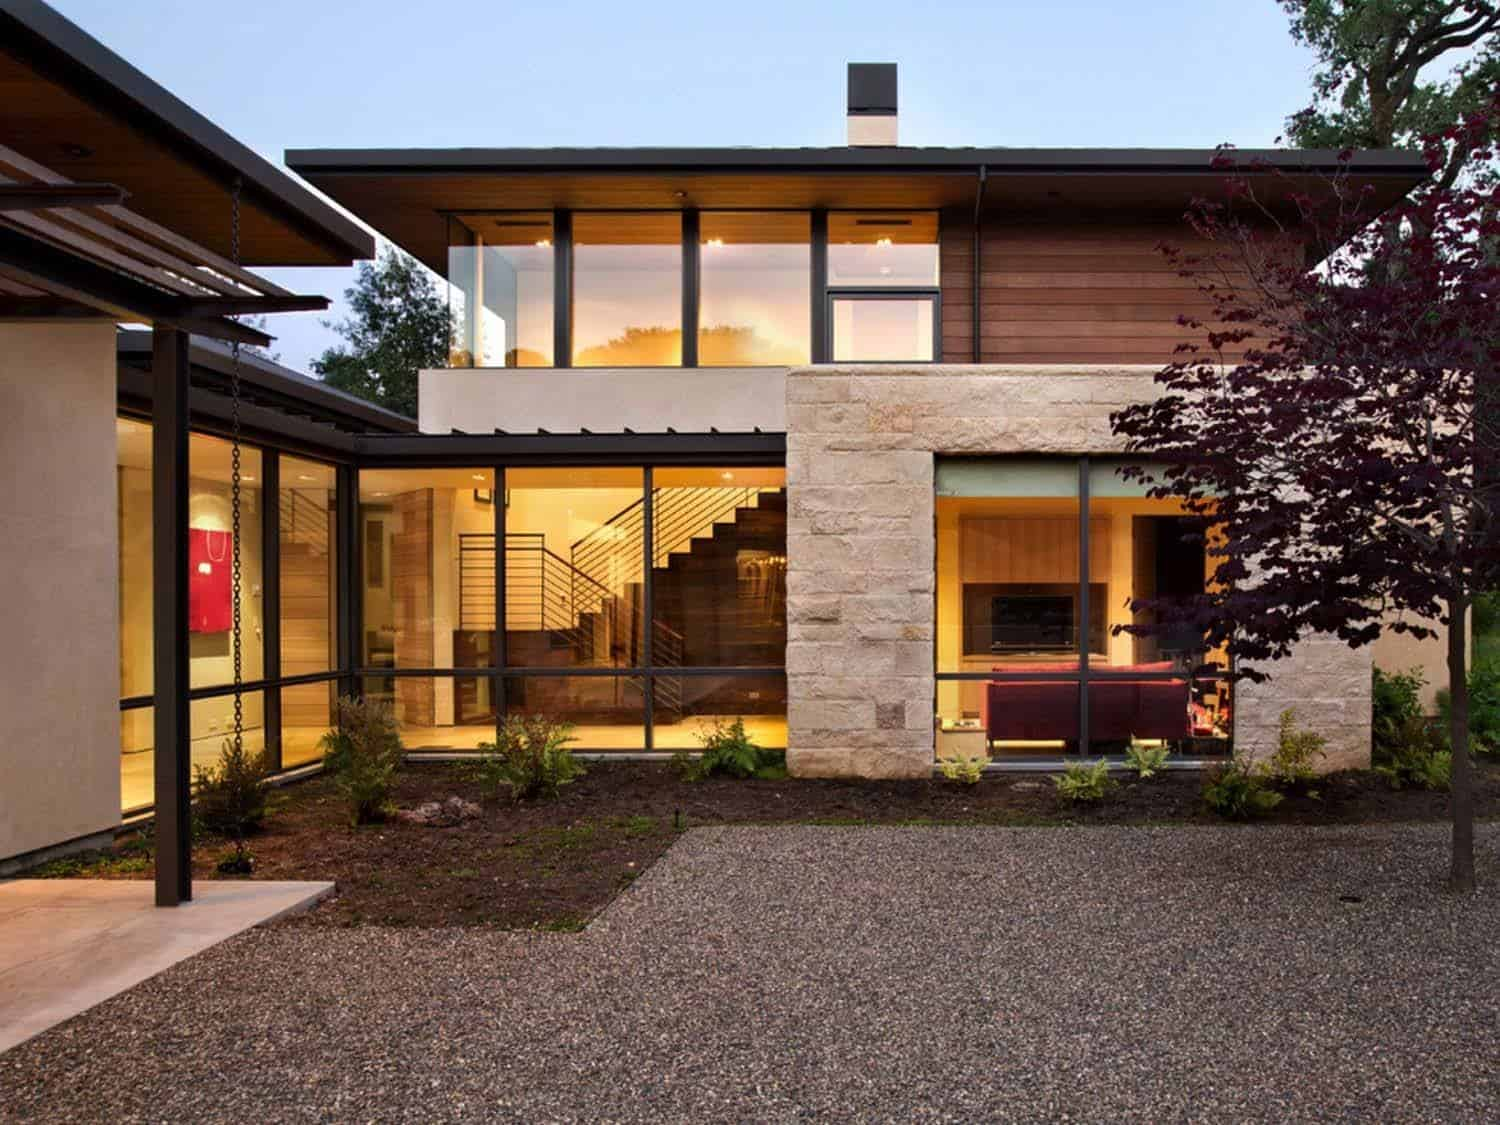 Meadow Creek Residence-Arcanum Architecture-03-1 Kindesign